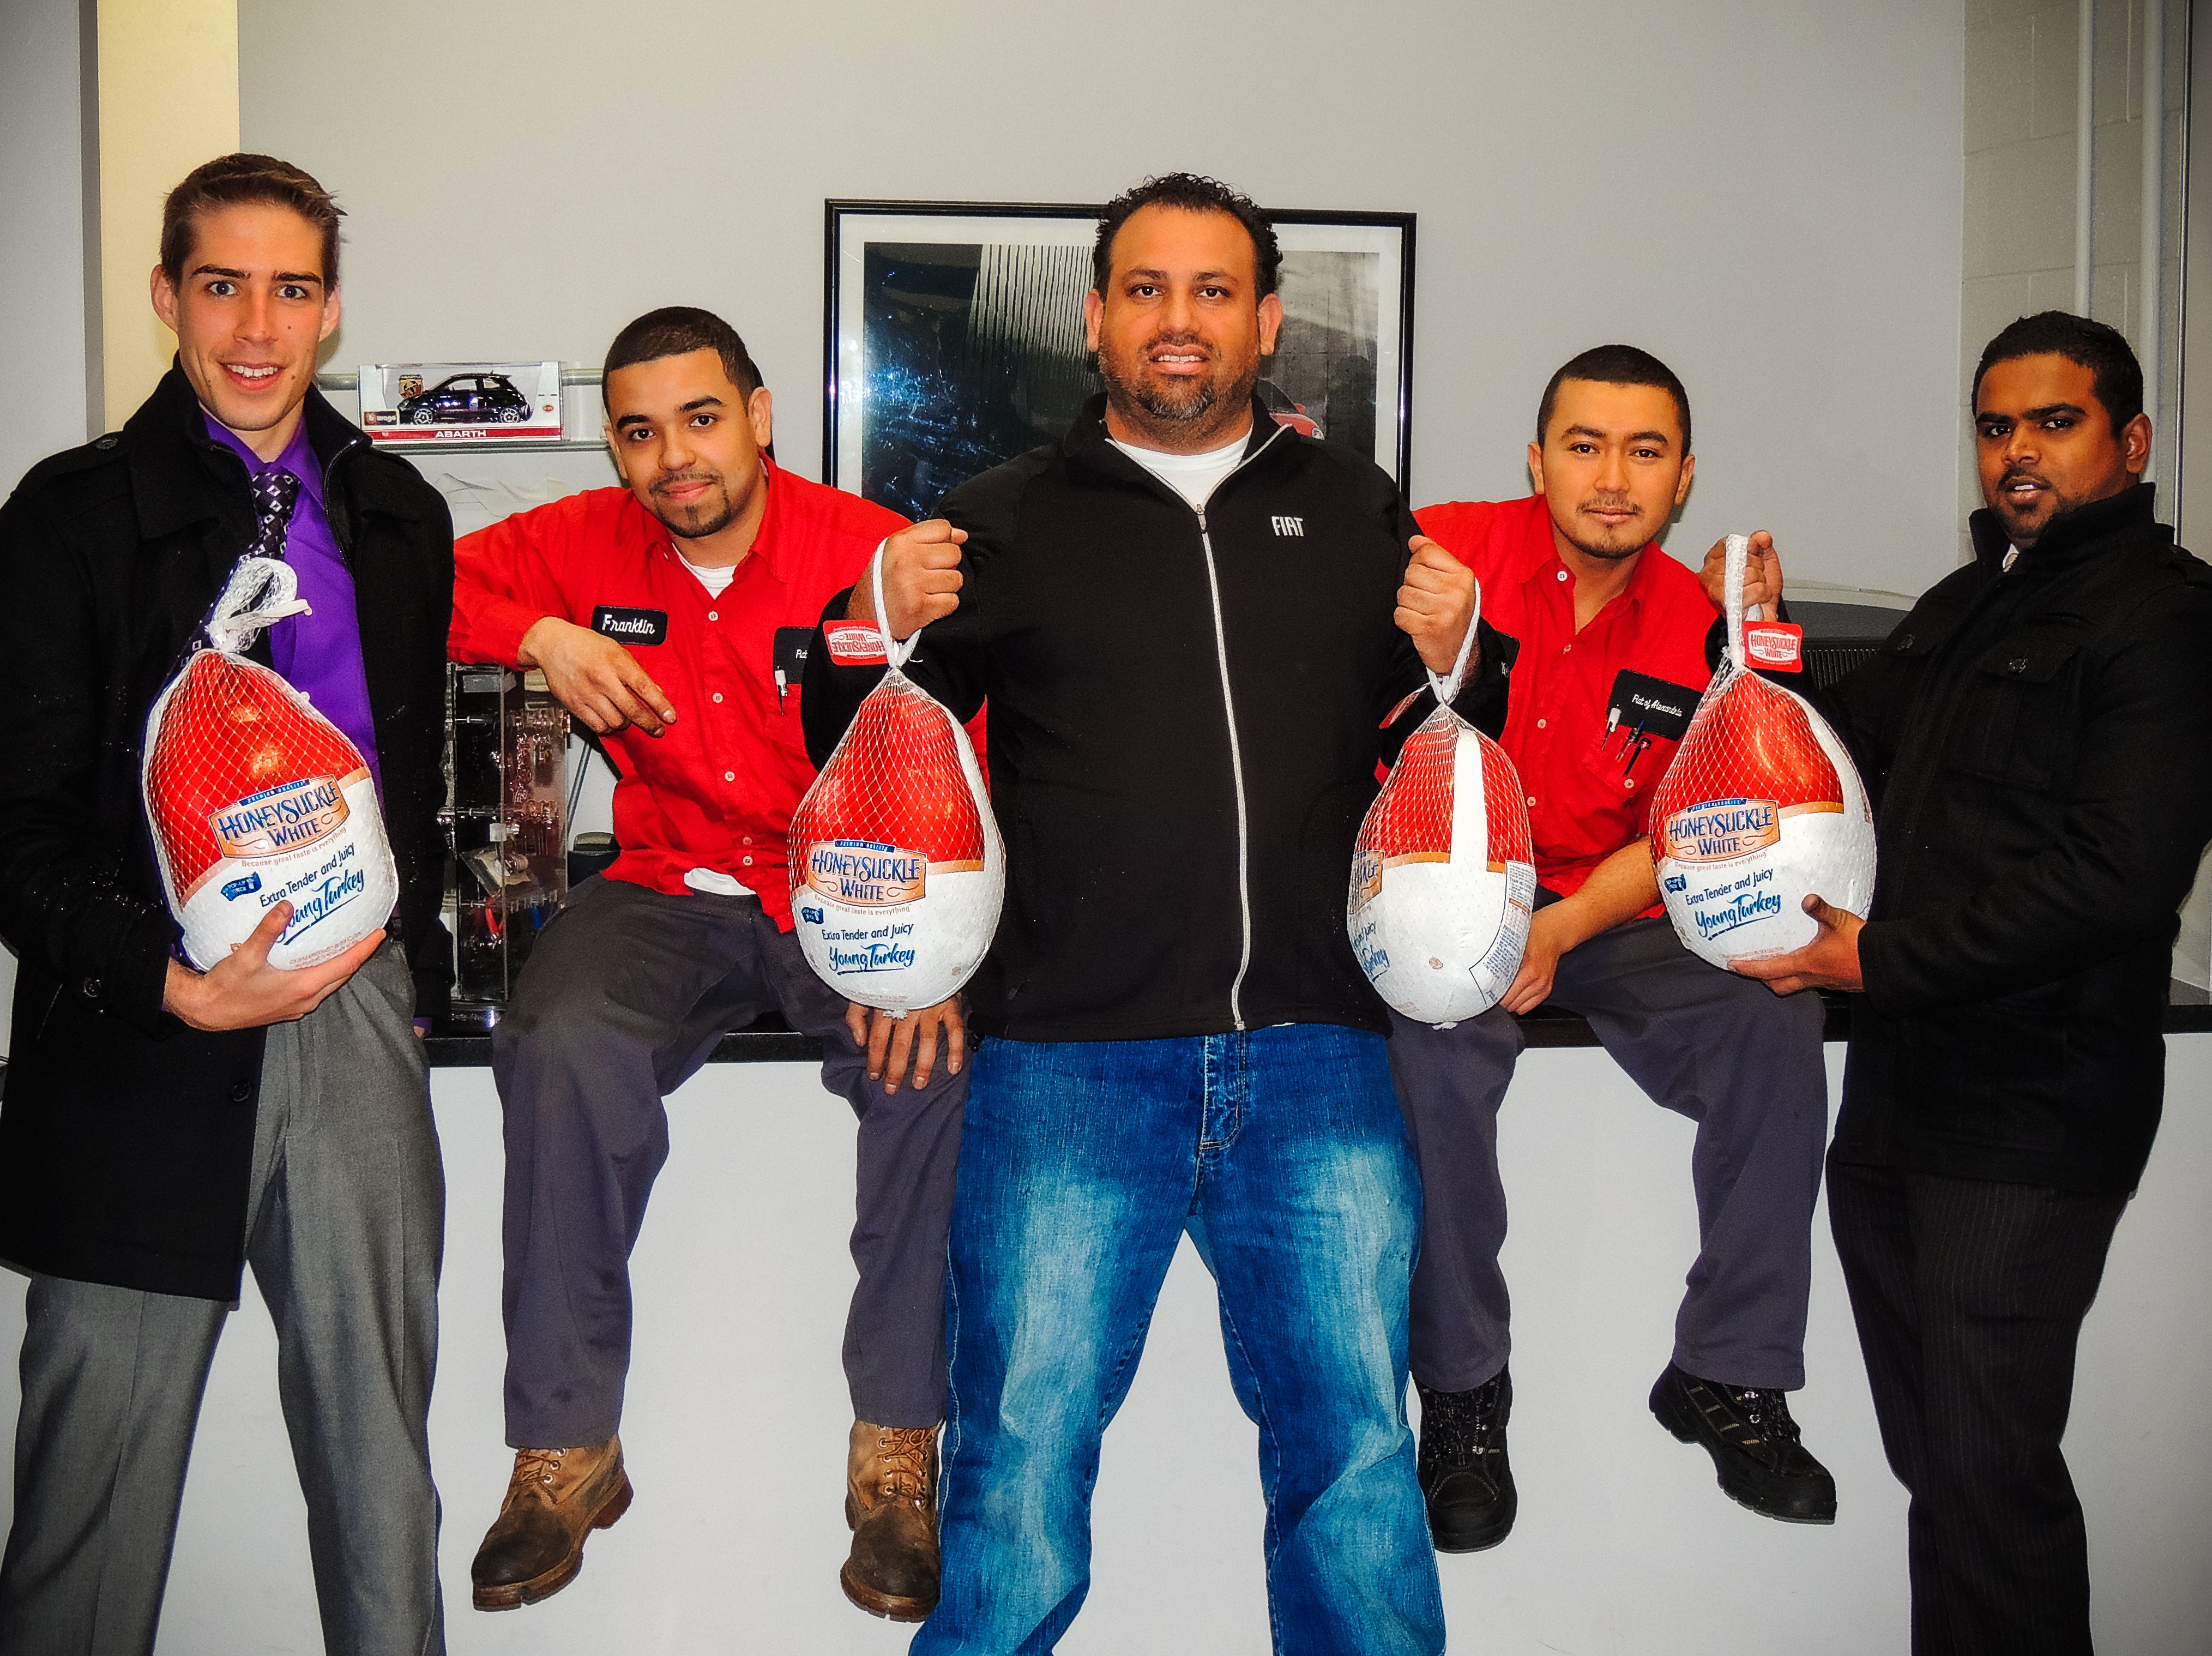 tweets4turkeys was an event put on by rosenthal automotive our charitable company that decided